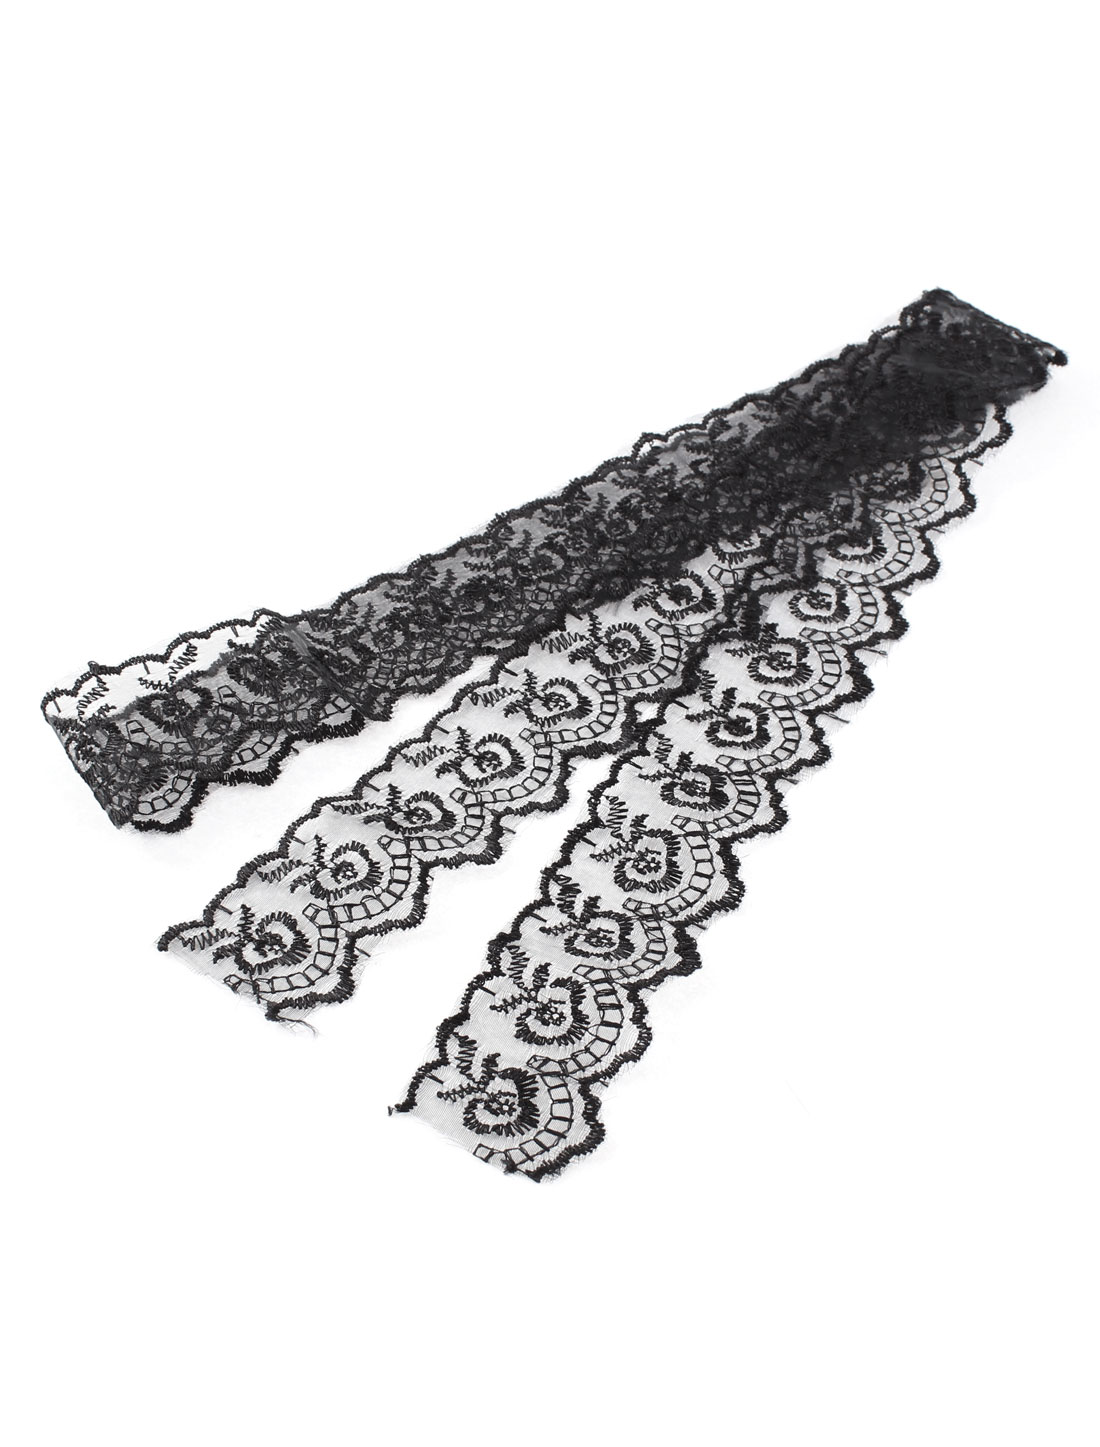 Wedding Dress Headwear Veil Floral Pattern Lace Trim Ribbon Black 4.5cm x 1M